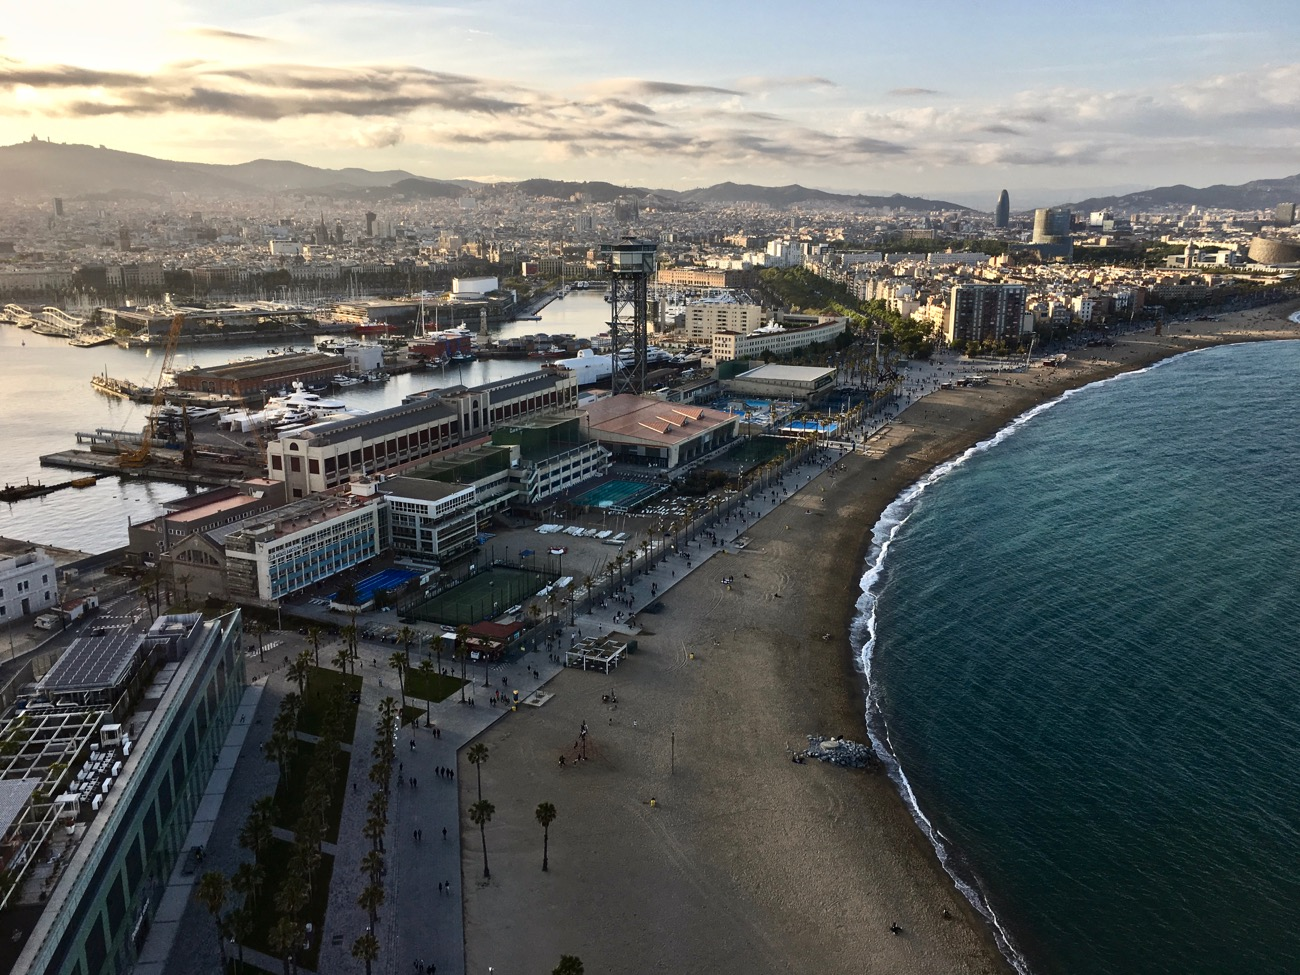 Drone Laws in Spain